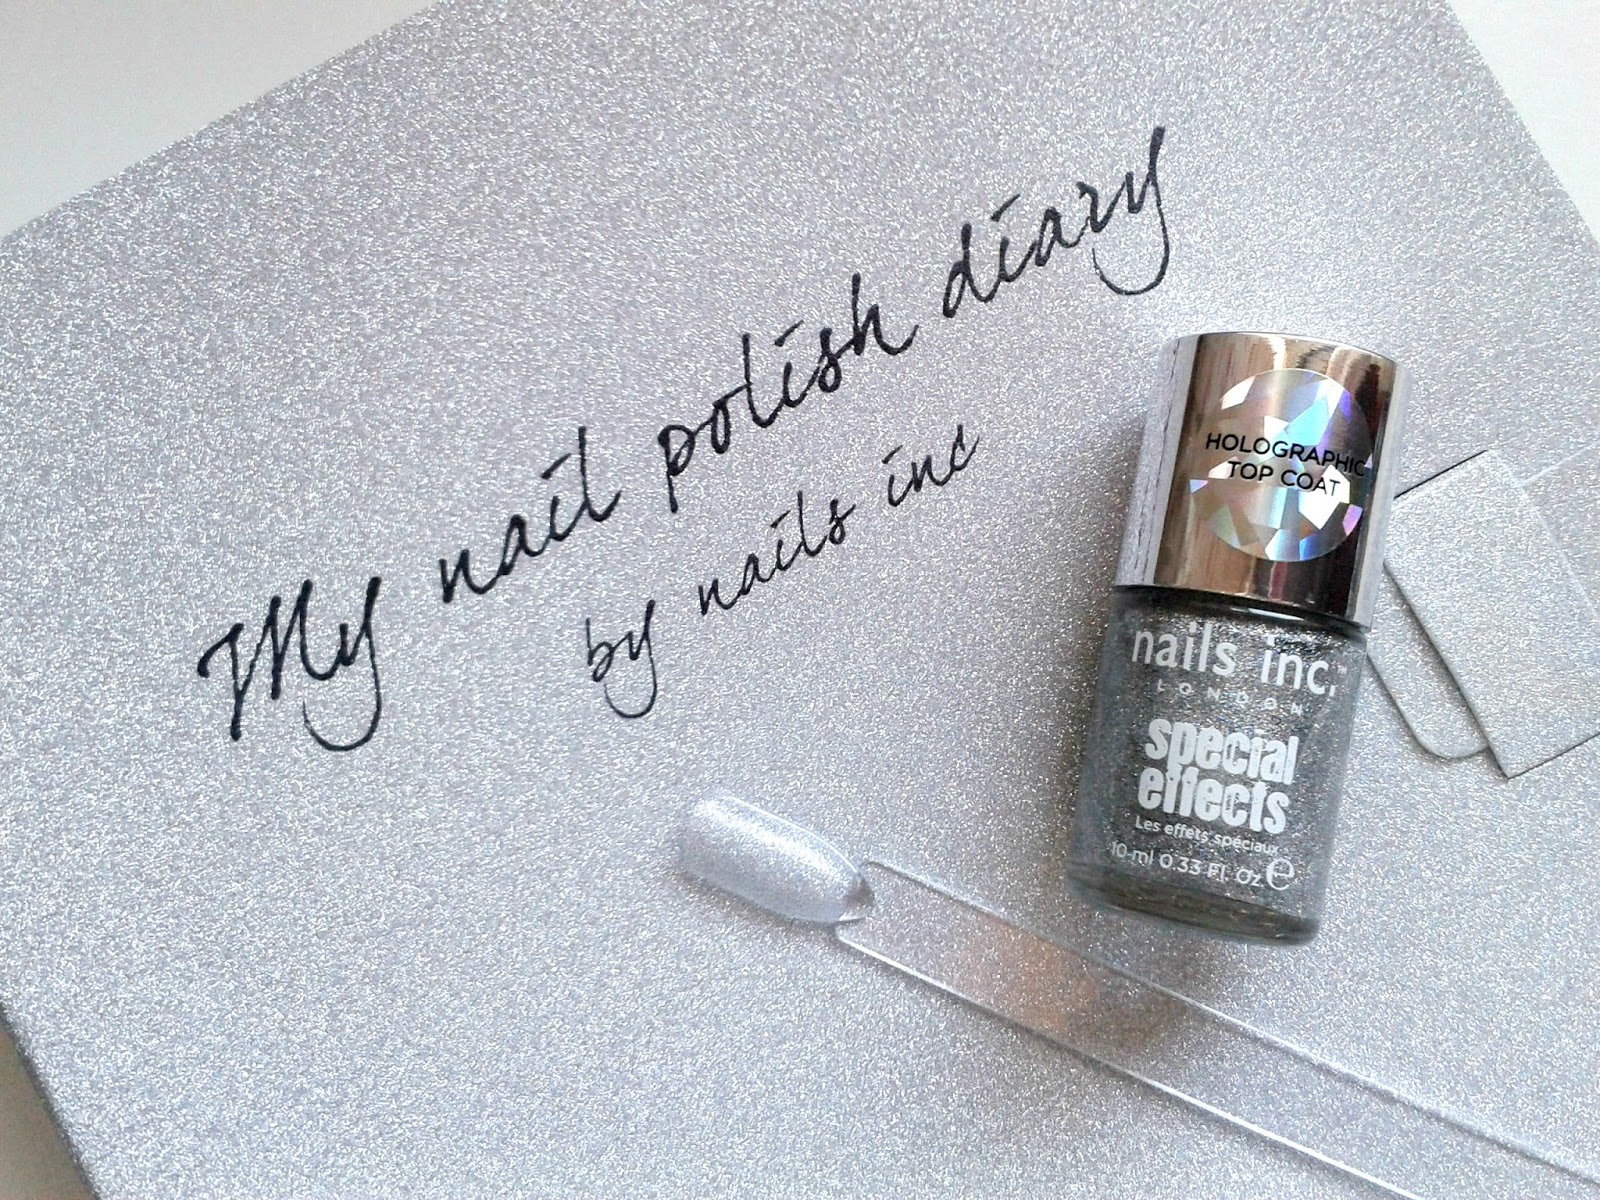 Nails Inc Electric Lane Holographic Top Coat Beauty Review Nails Inc Nail Polish Diary: September